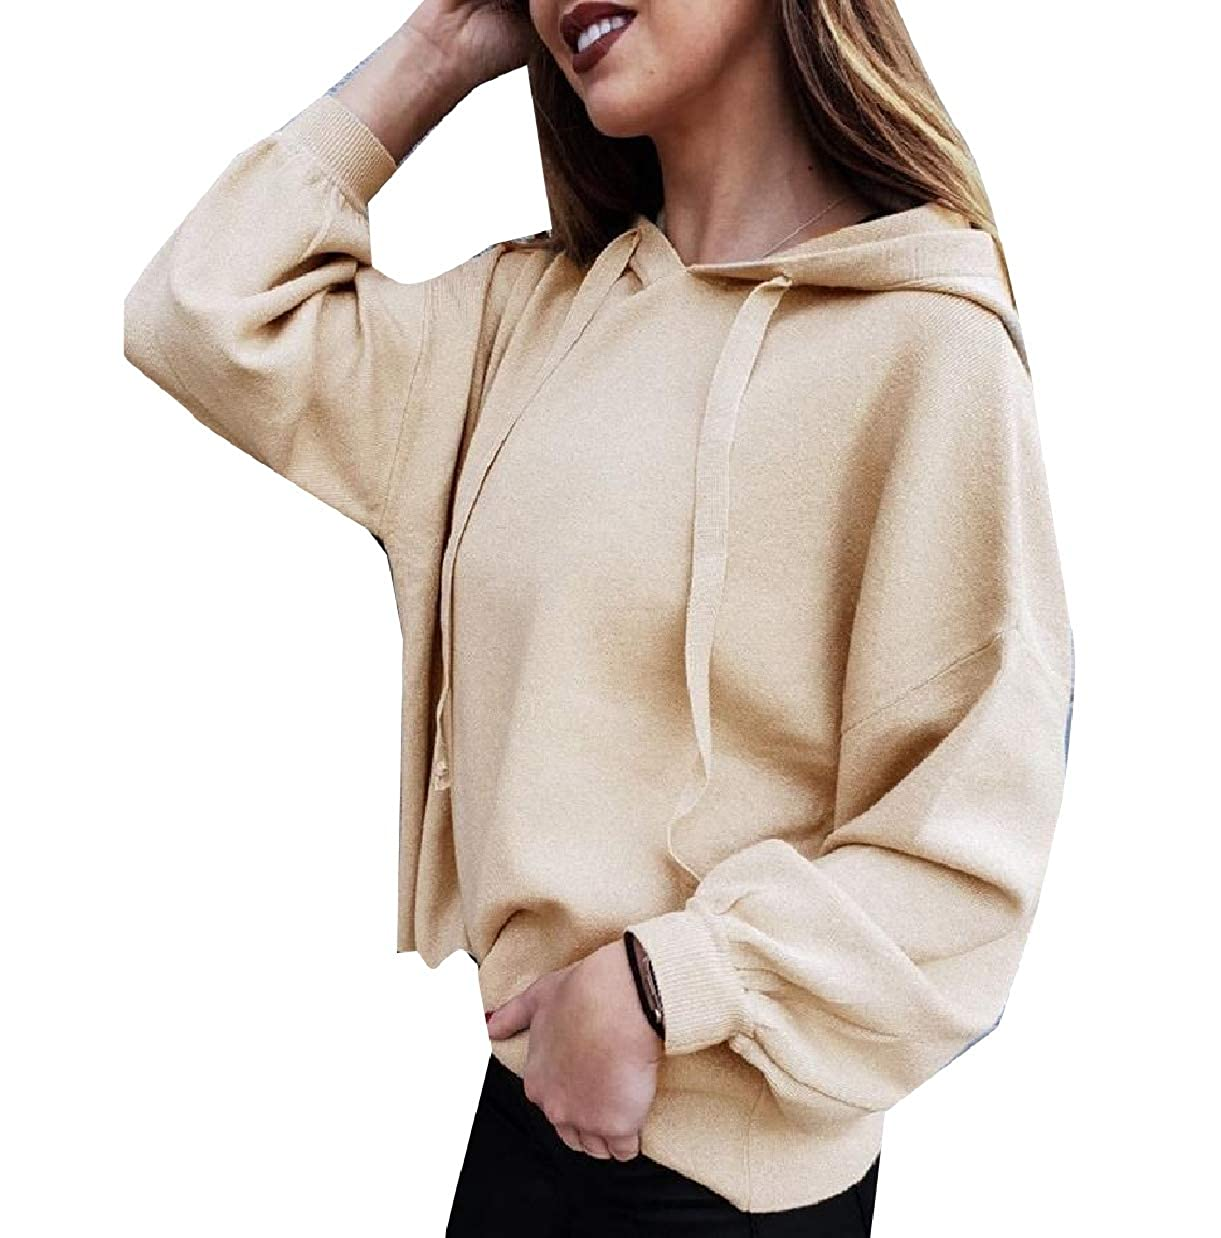 XiaoShop Womens Relaxed Leisure Unisex Classic Hoode Pullover Sweatshirt